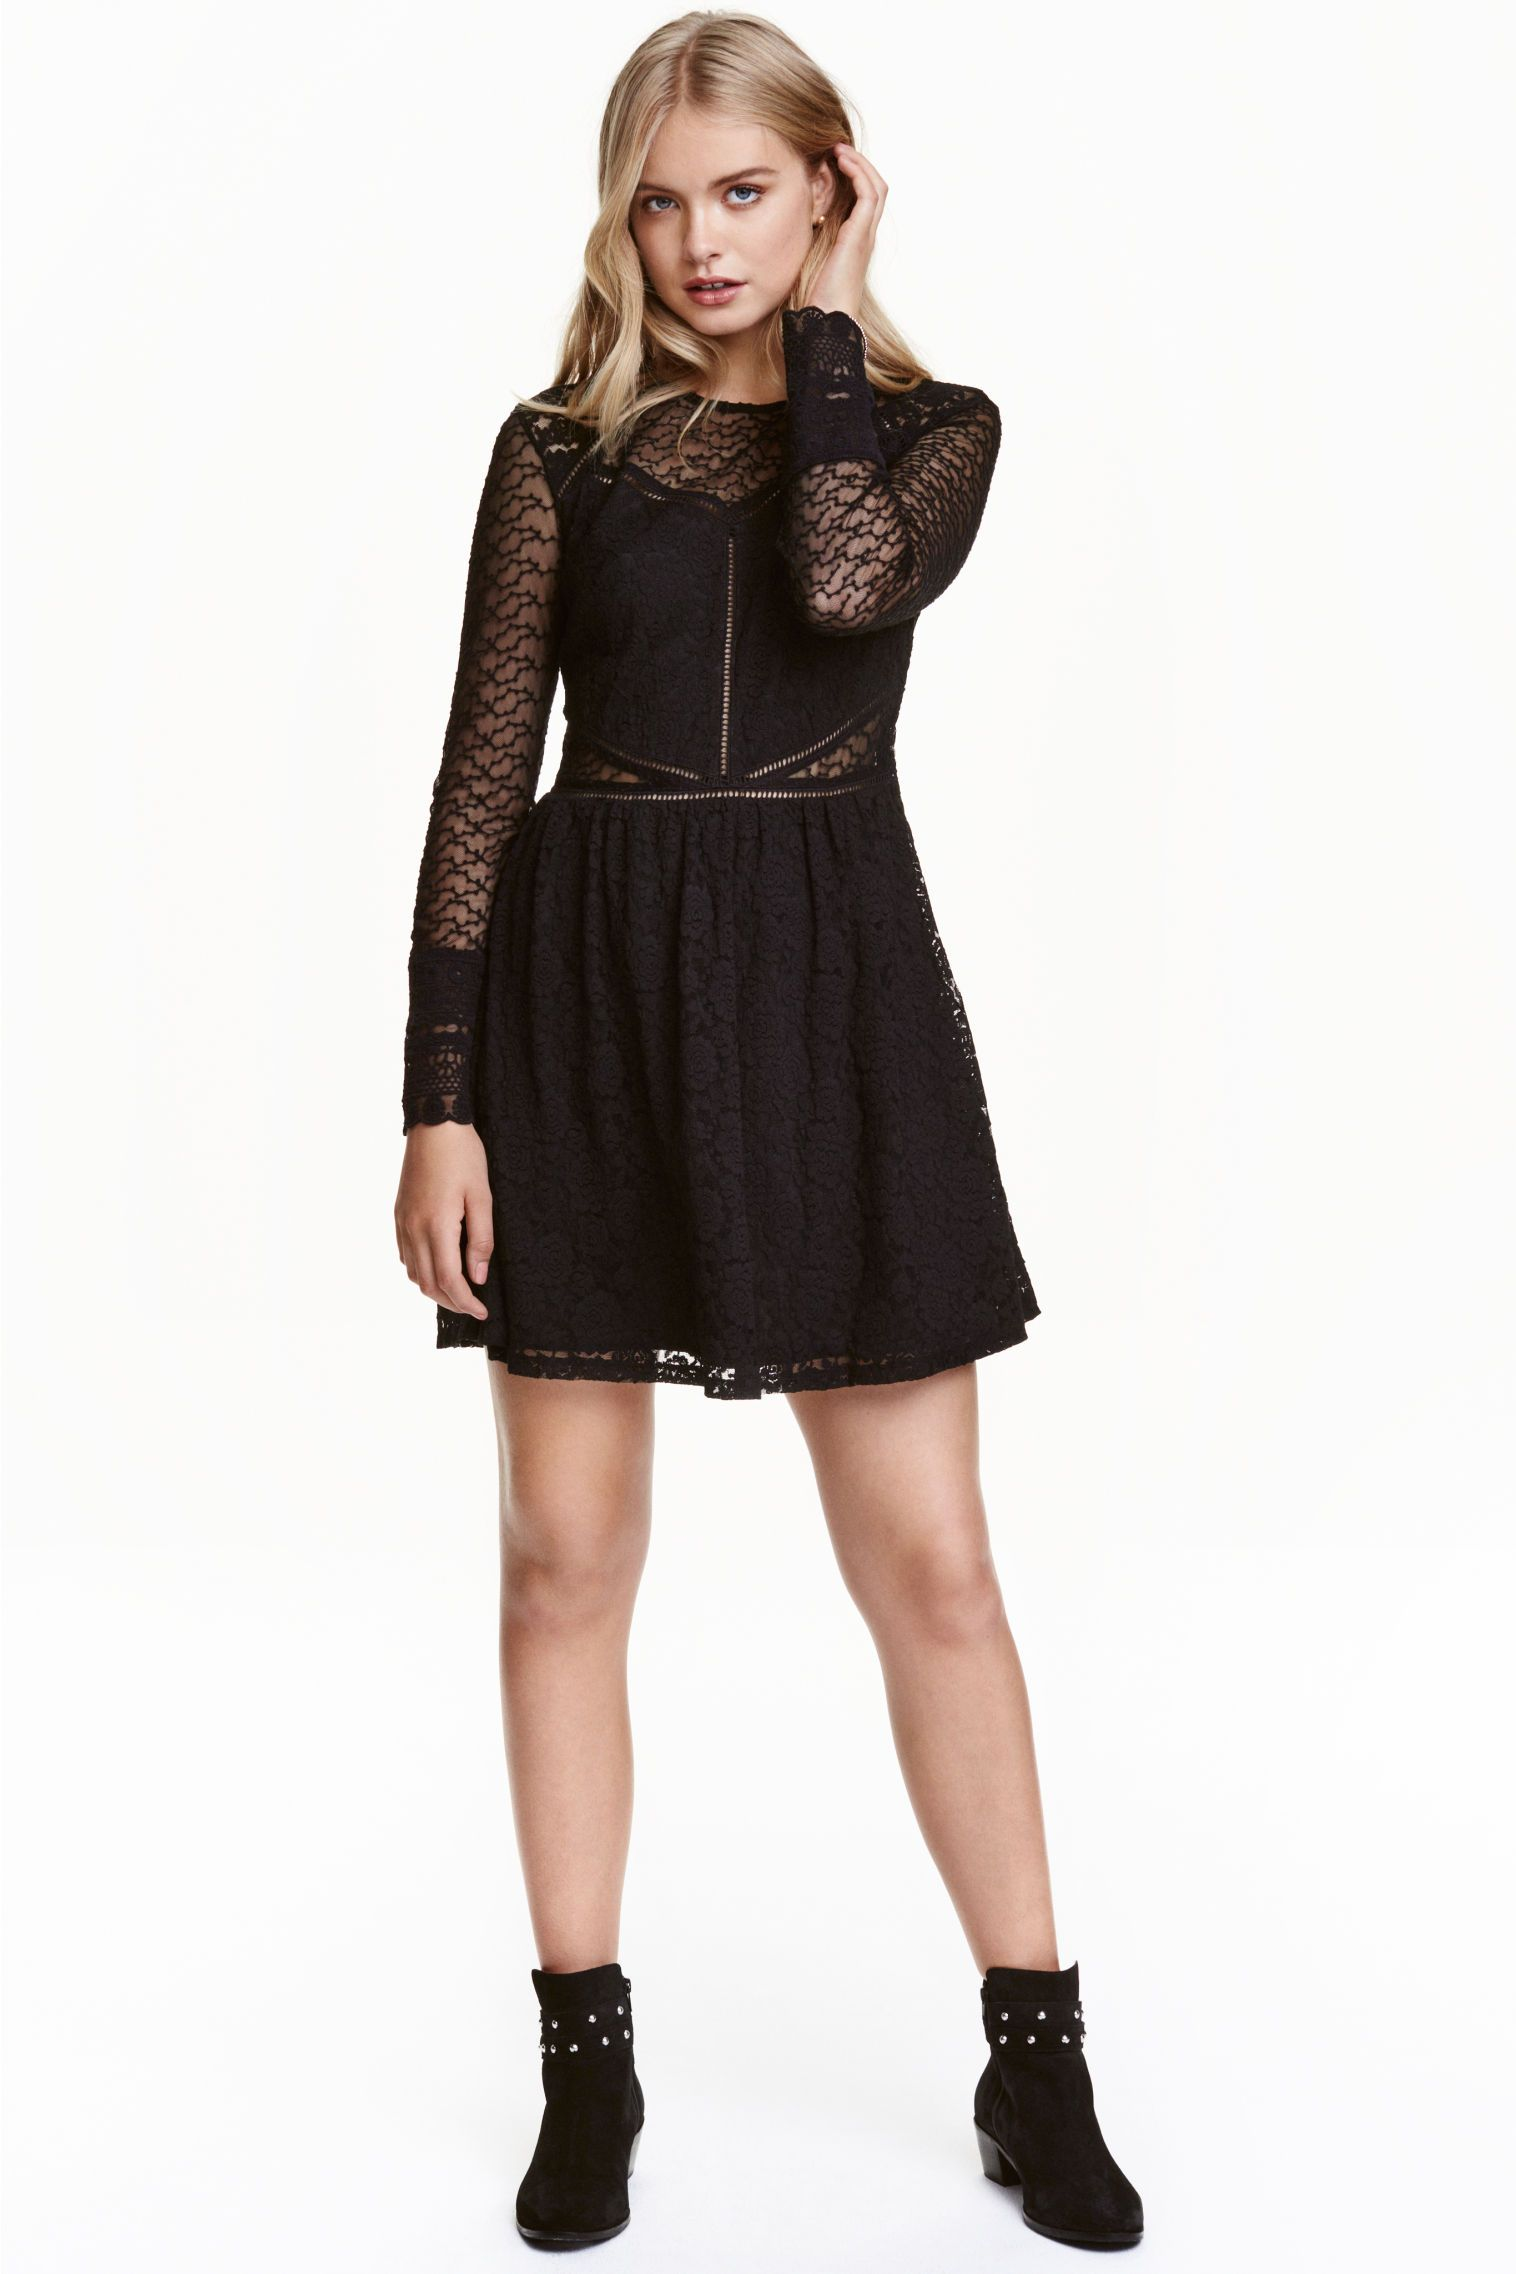 """<p>This lace number has sheer cut-outs right around the waist which draws the eye in at your favourite asset.</p><p><a href=""""http://www2.hm.com/en_gb/productpage.0417728003.html#"""" target=""""_blank"""">Lace dress, £29.99, H&amp&#x3B;M</a></p>"""